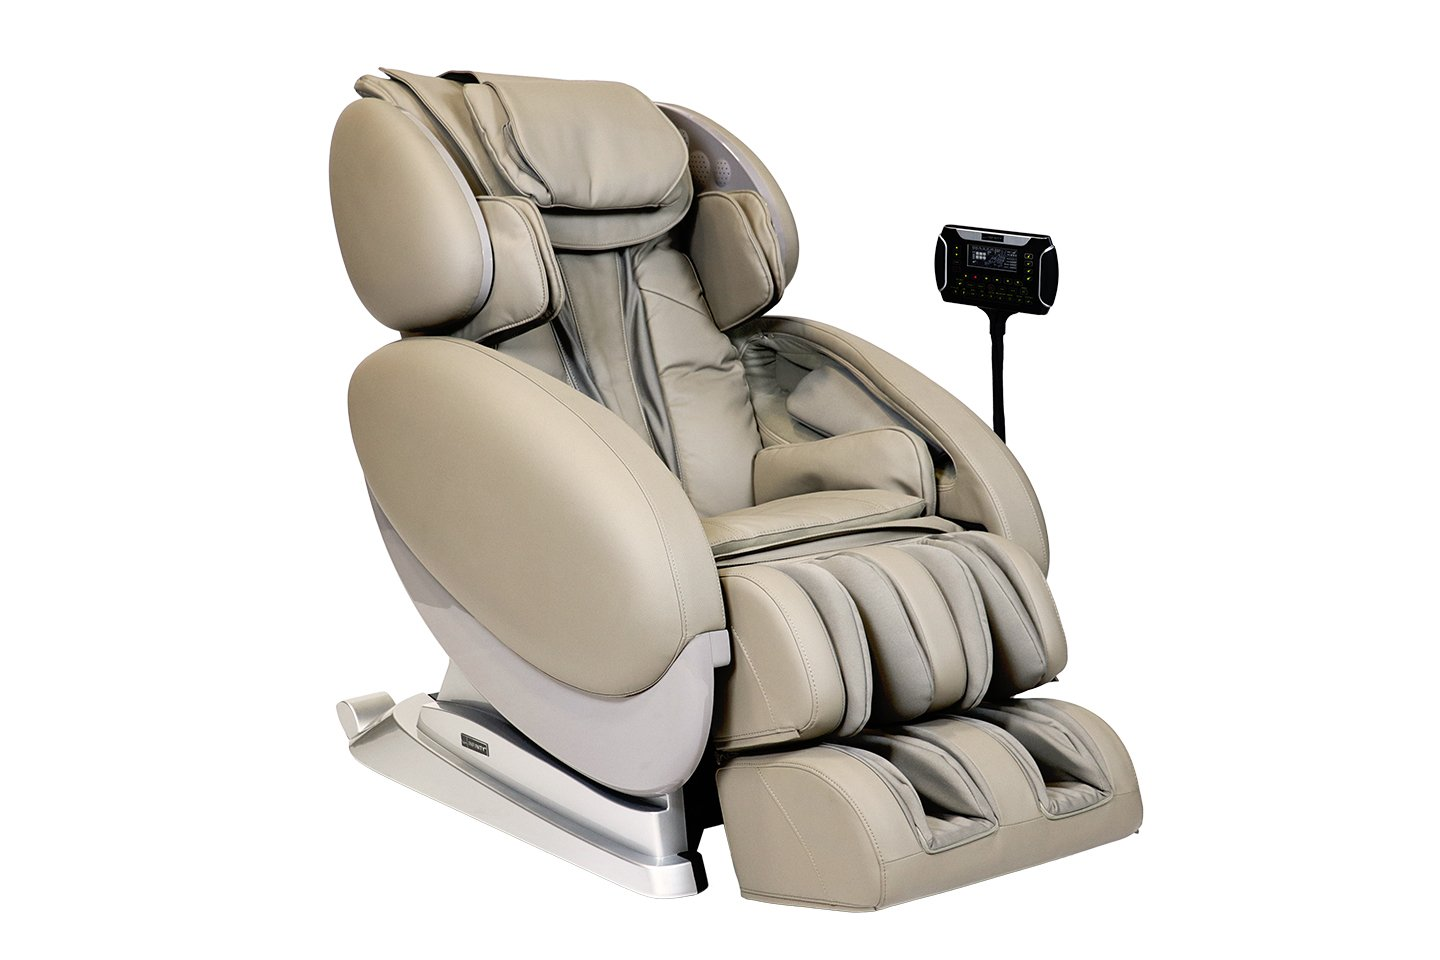 Top 10 Best Japanese Massage ChairReviews in 2020 3